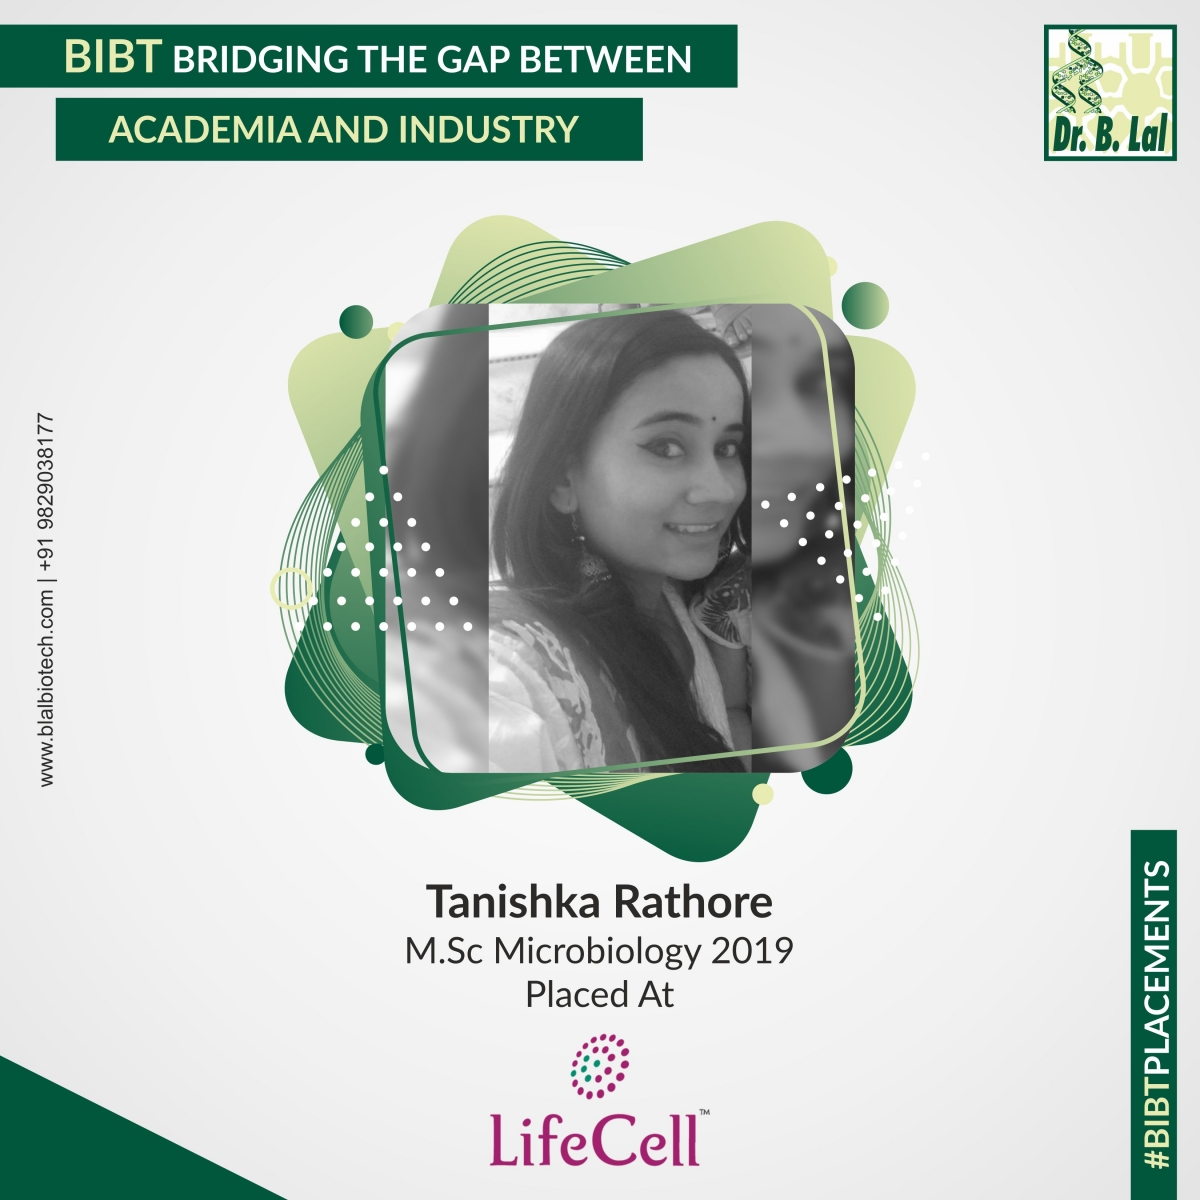 Tanishka Rathore, M.Sc. Microbiology 2019 | #BIBTPlacements